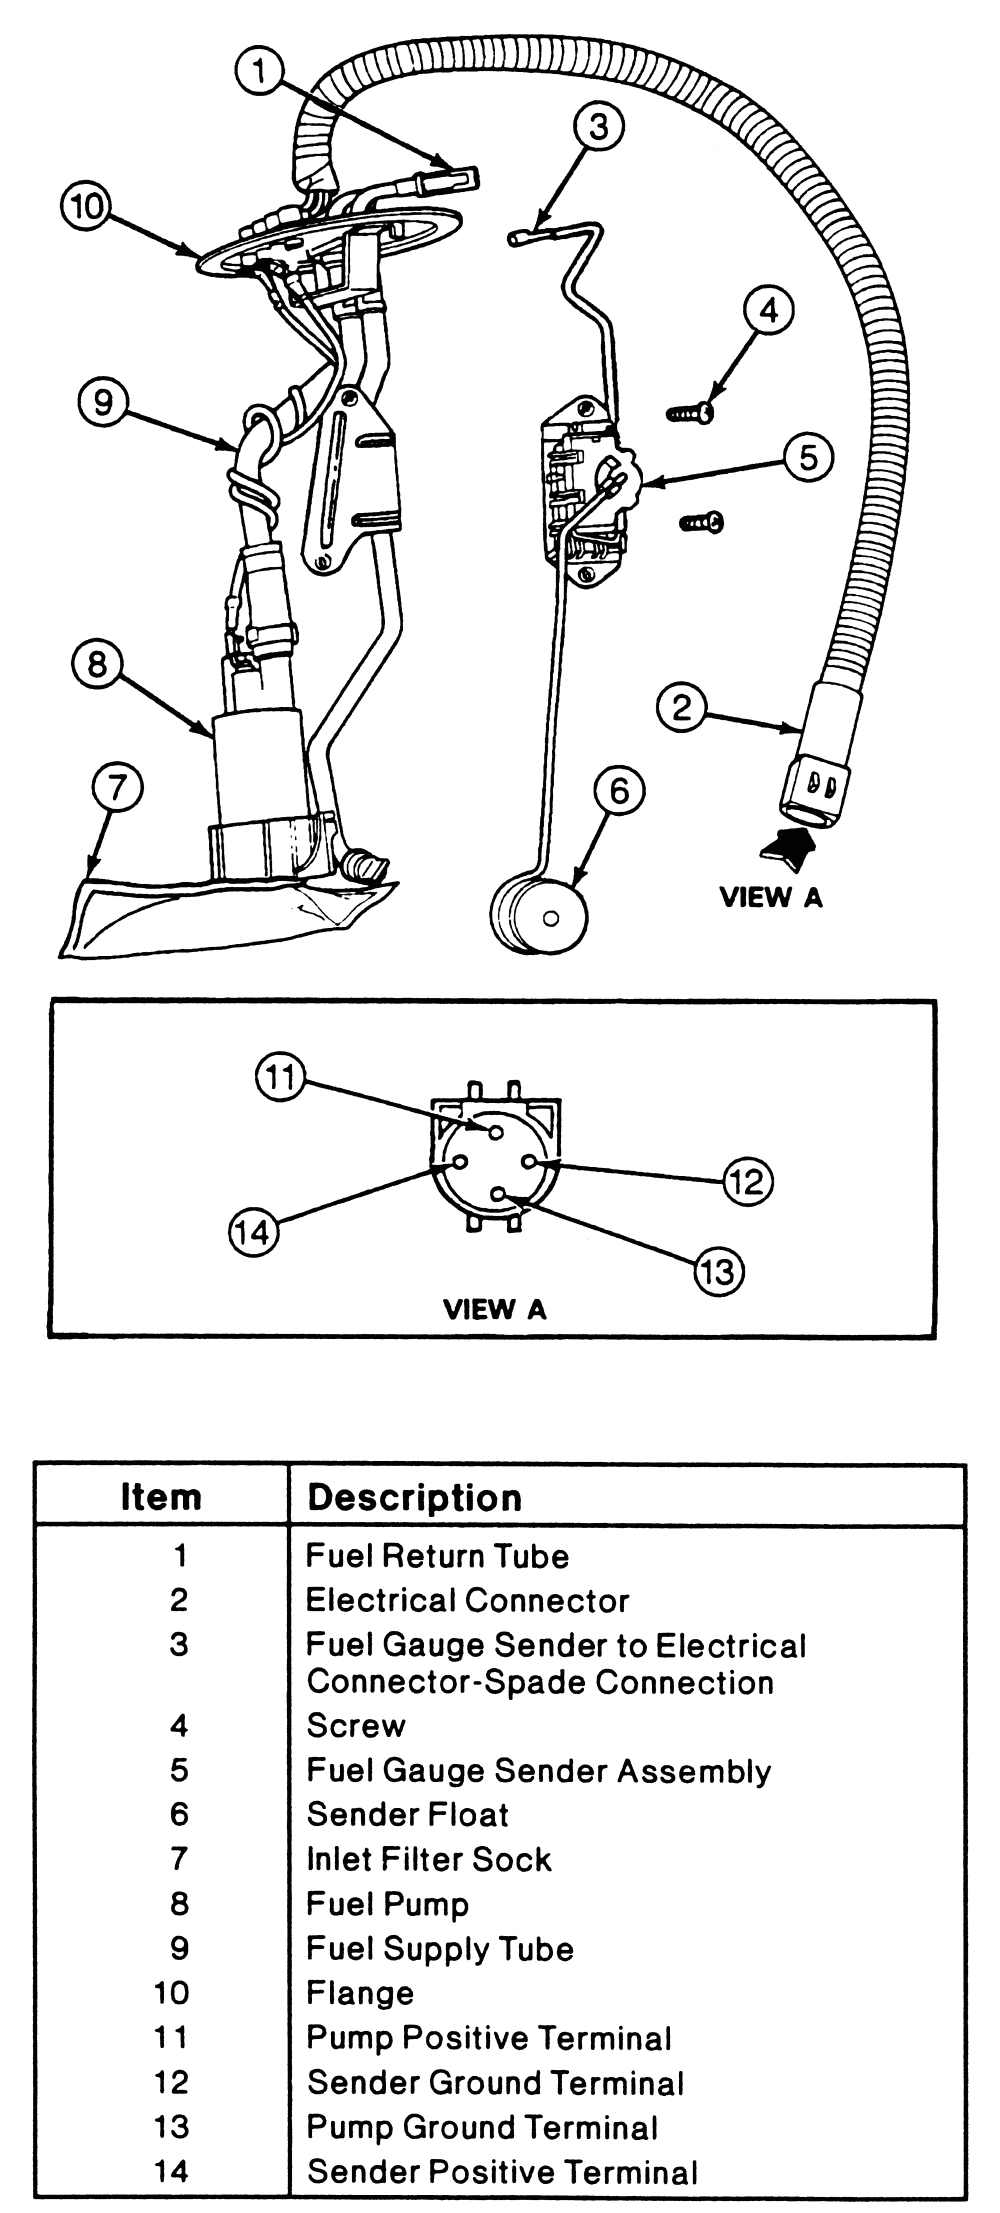 2001 ford Ranger Fuel Pump Wiring Diagram Wrg 1907 ford Ranger Fuel Gauge Wiring Diagram